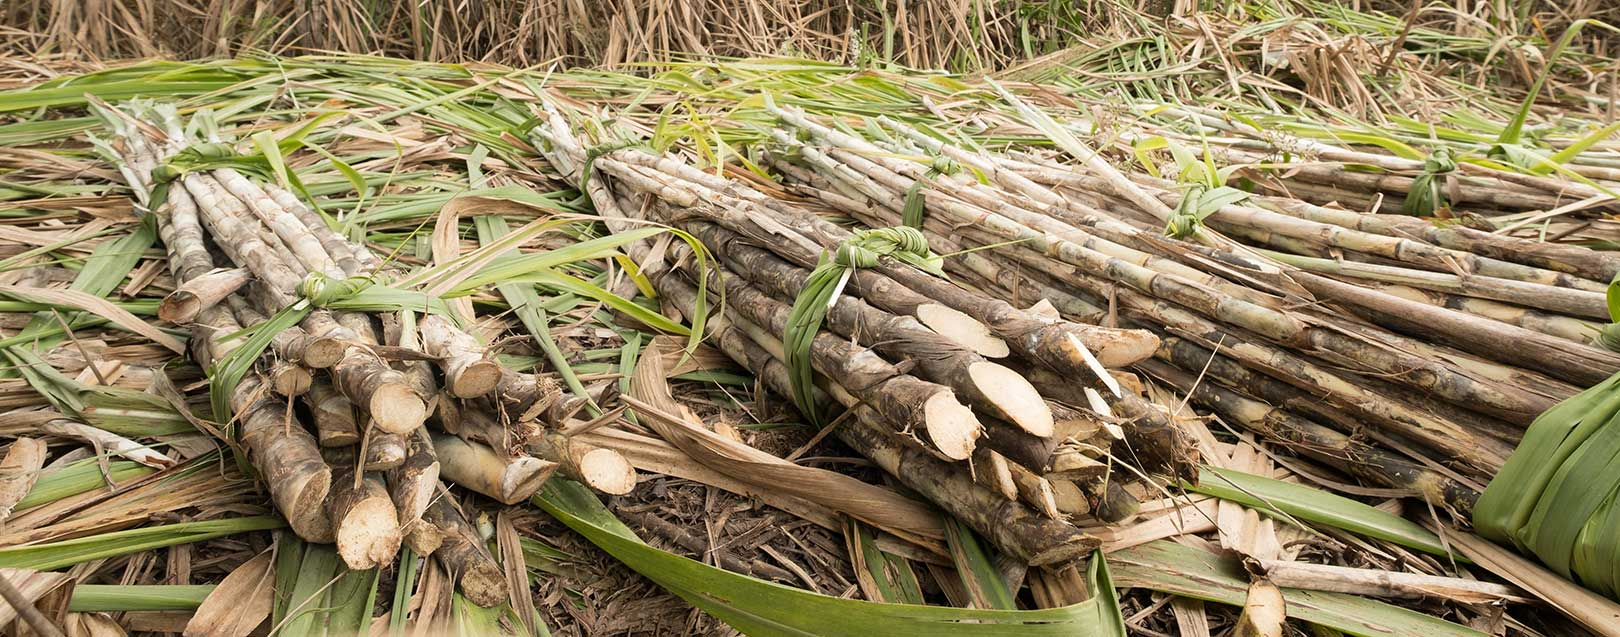 Govt increases sugarcane's fair price by Rs. 25/quintal to Rs. 255